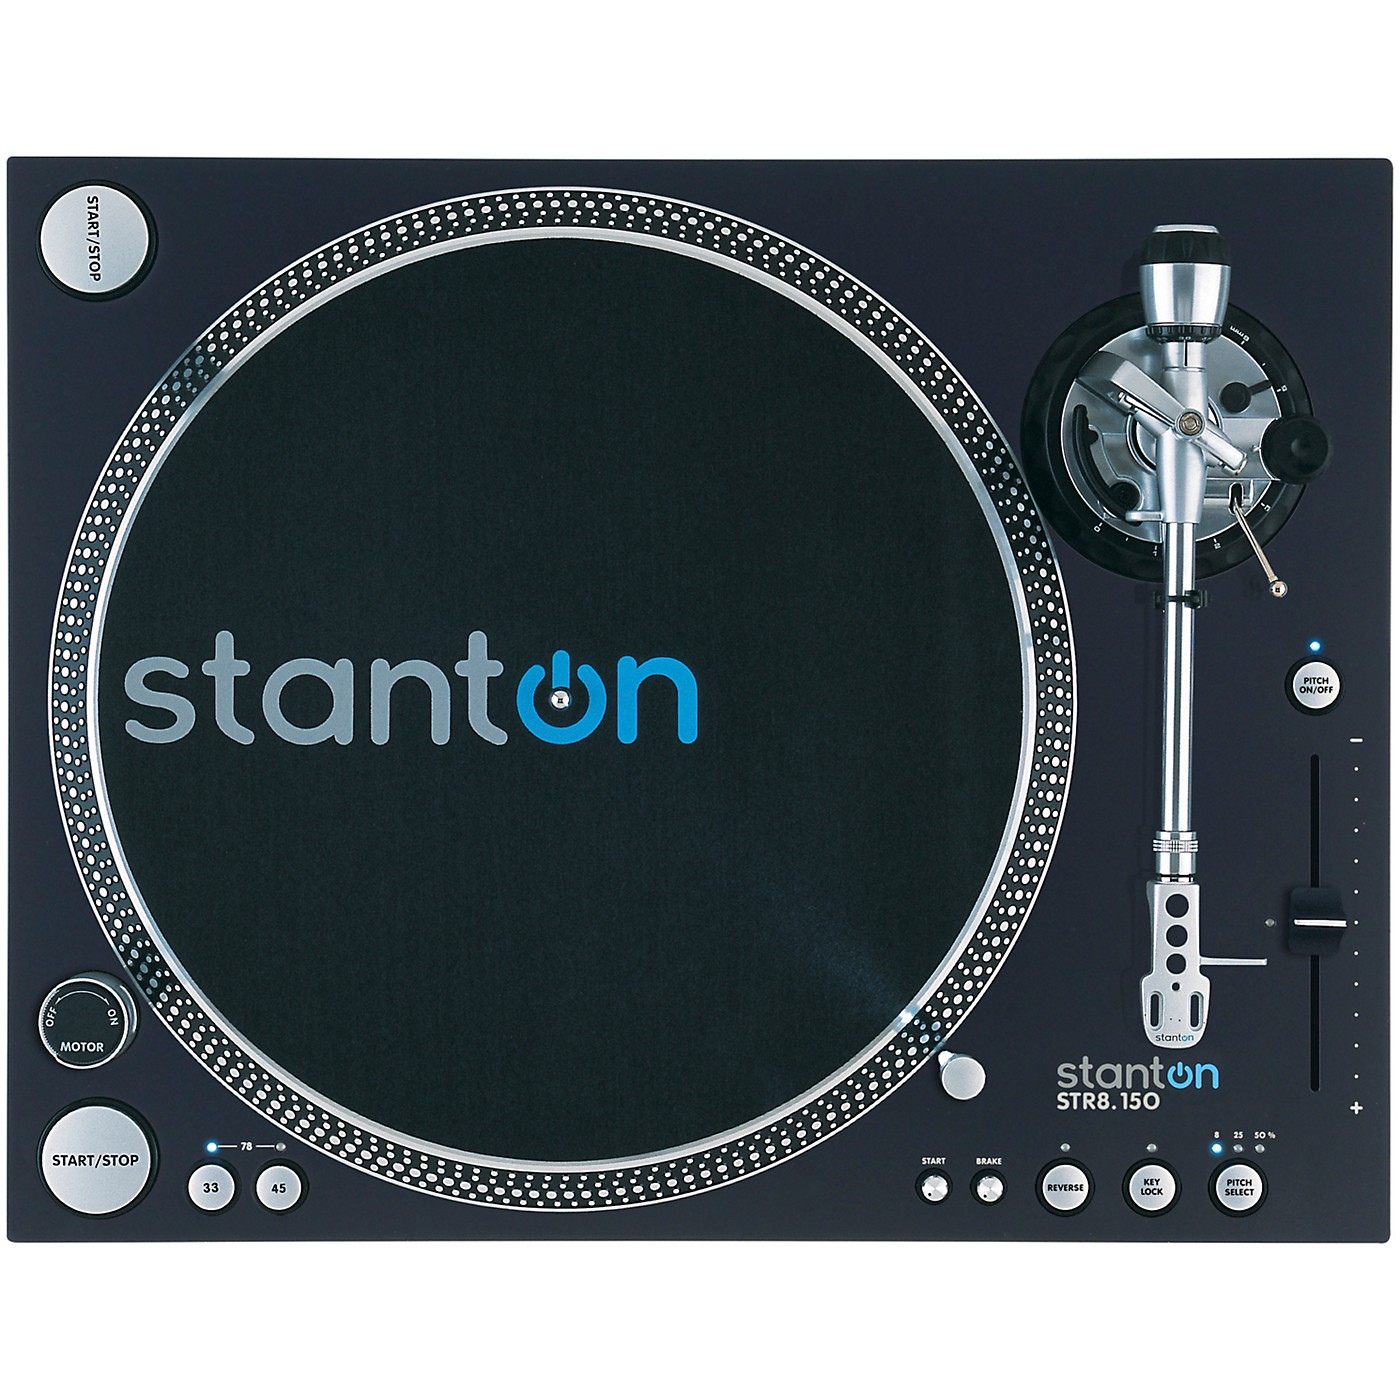 Stanton STR8.150 M2 Direct Drive Professional DJ Turntable with Straight Tone Arm thumbnail